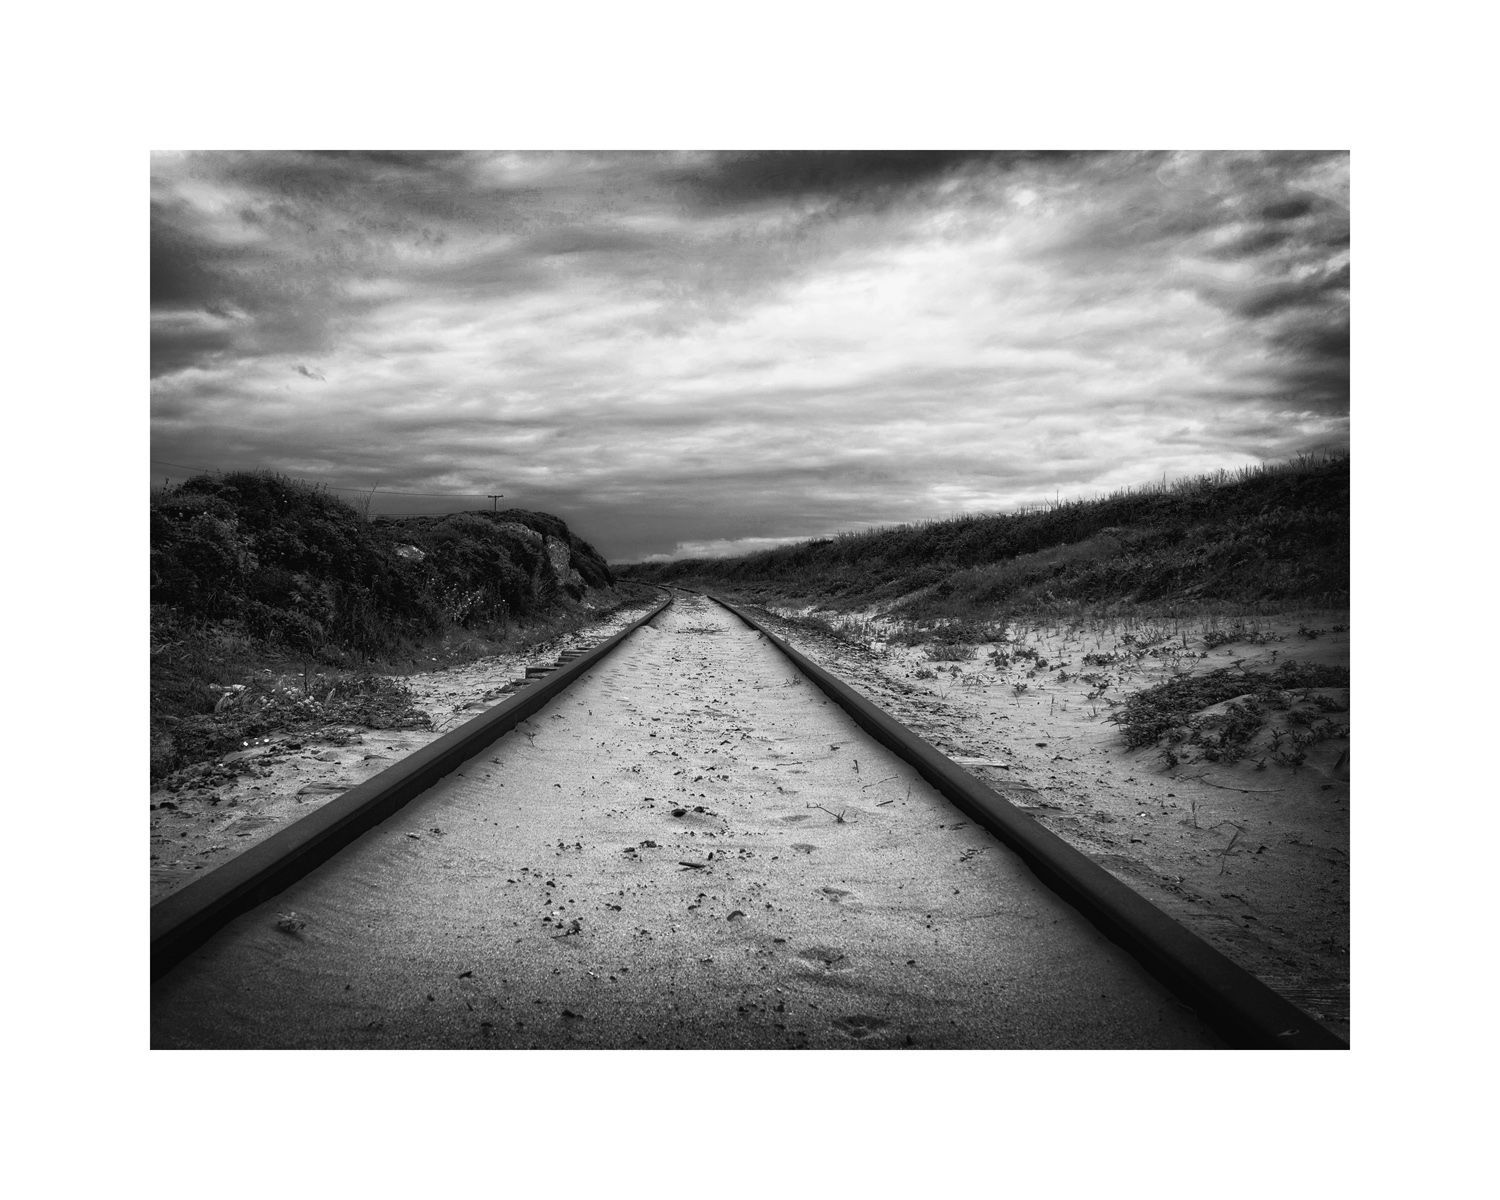 1tracks_in_the_sand_16x20